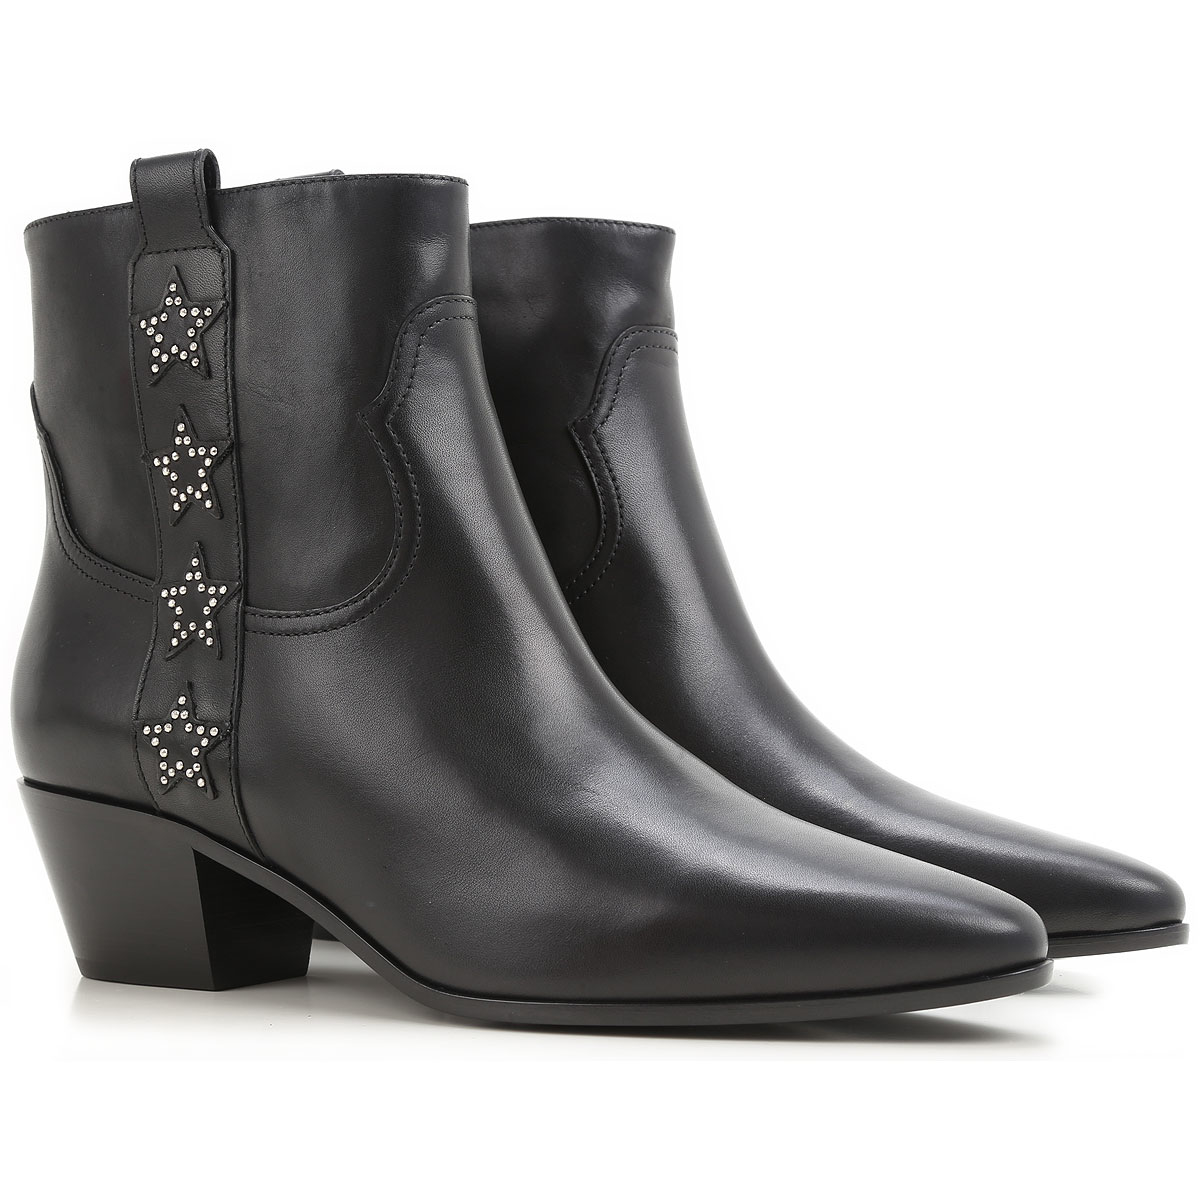 Yves Saint Laurent Boots for Women Booties On Sale in Outlet Canada - GOOFASH - Womens BOOTS